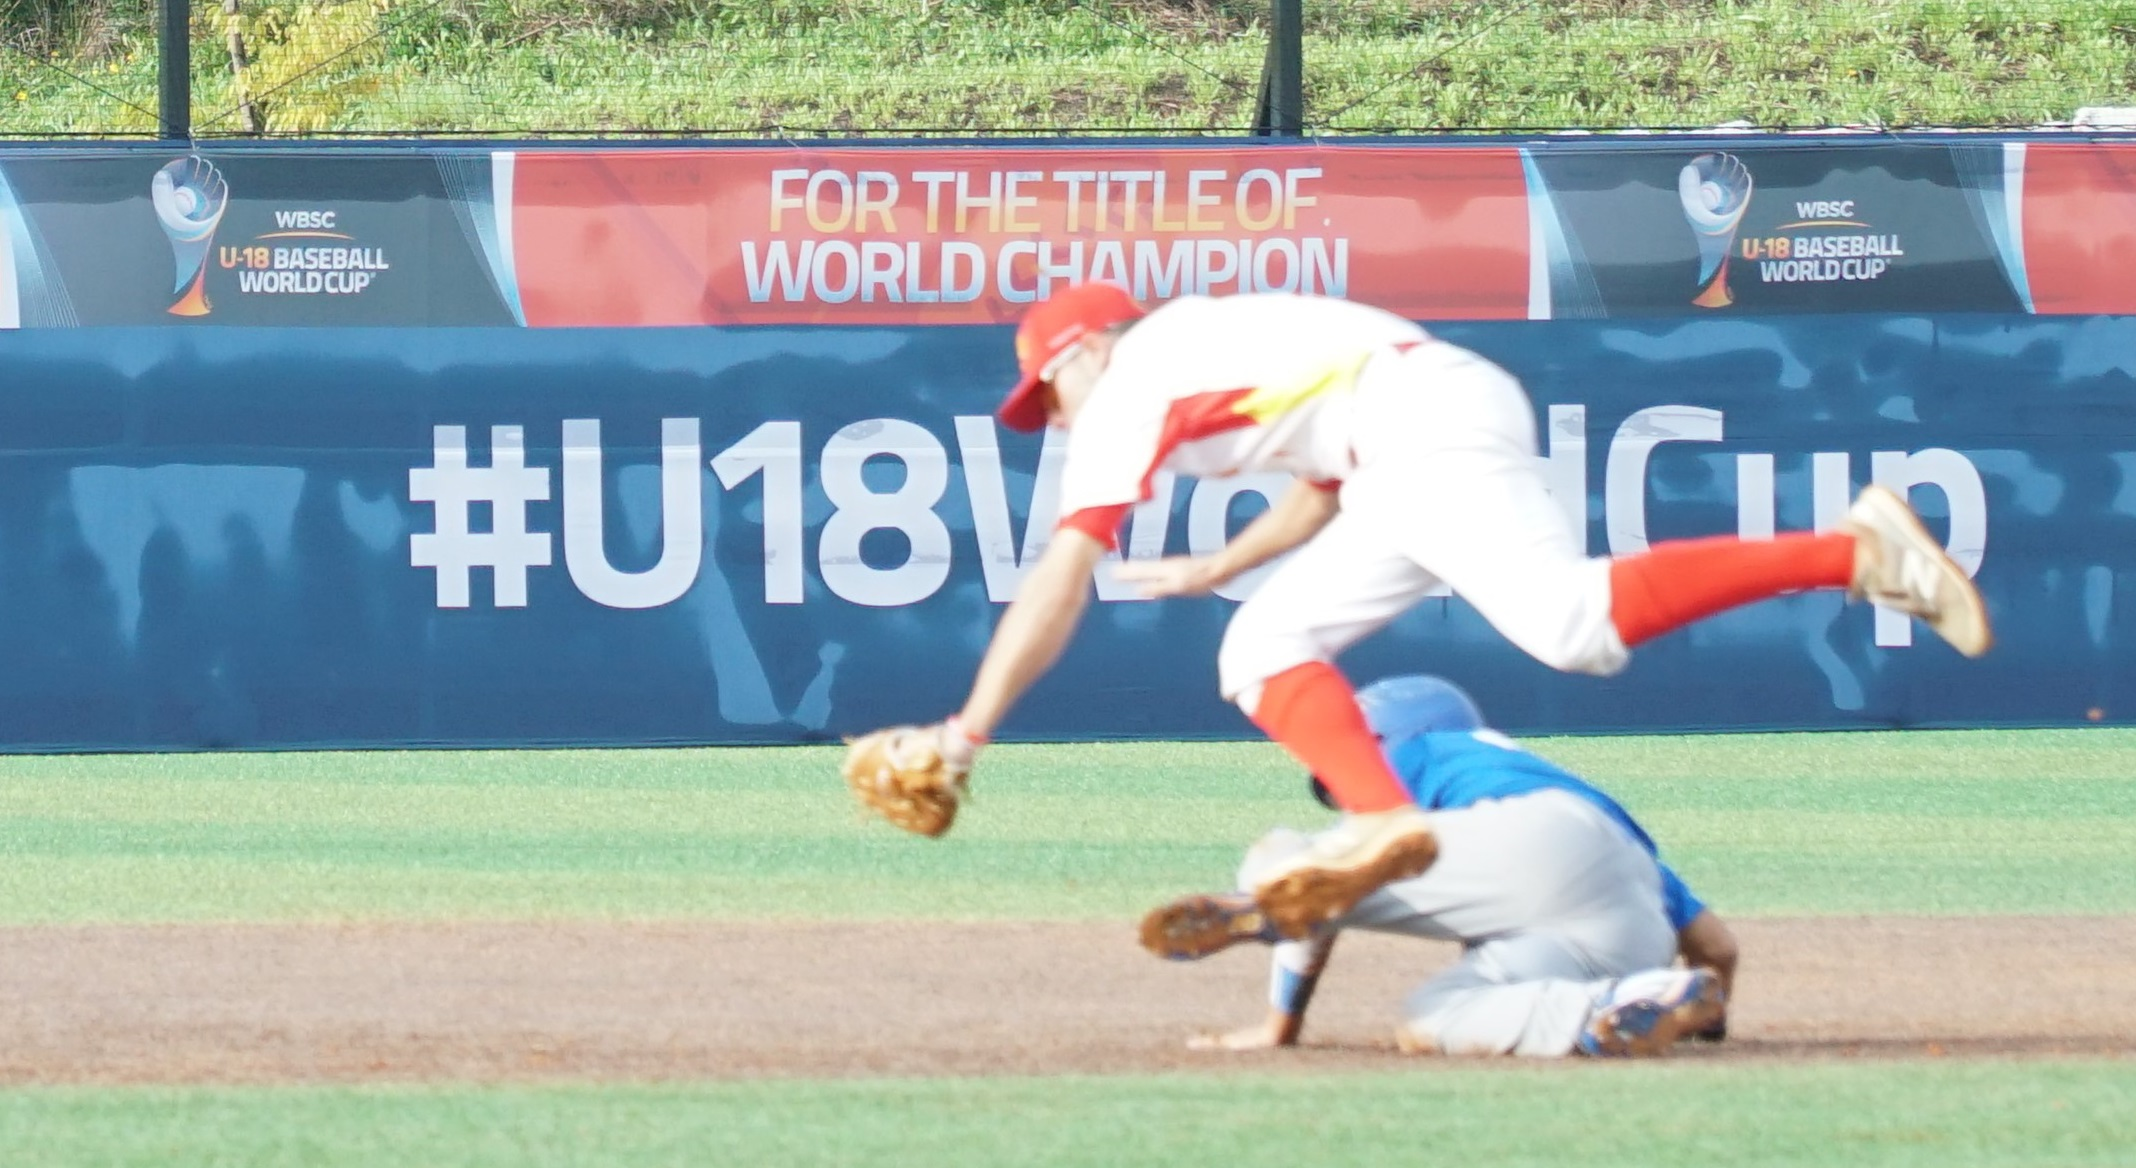 An athletic play by Spanish shortstop Ricardo Van Griecken